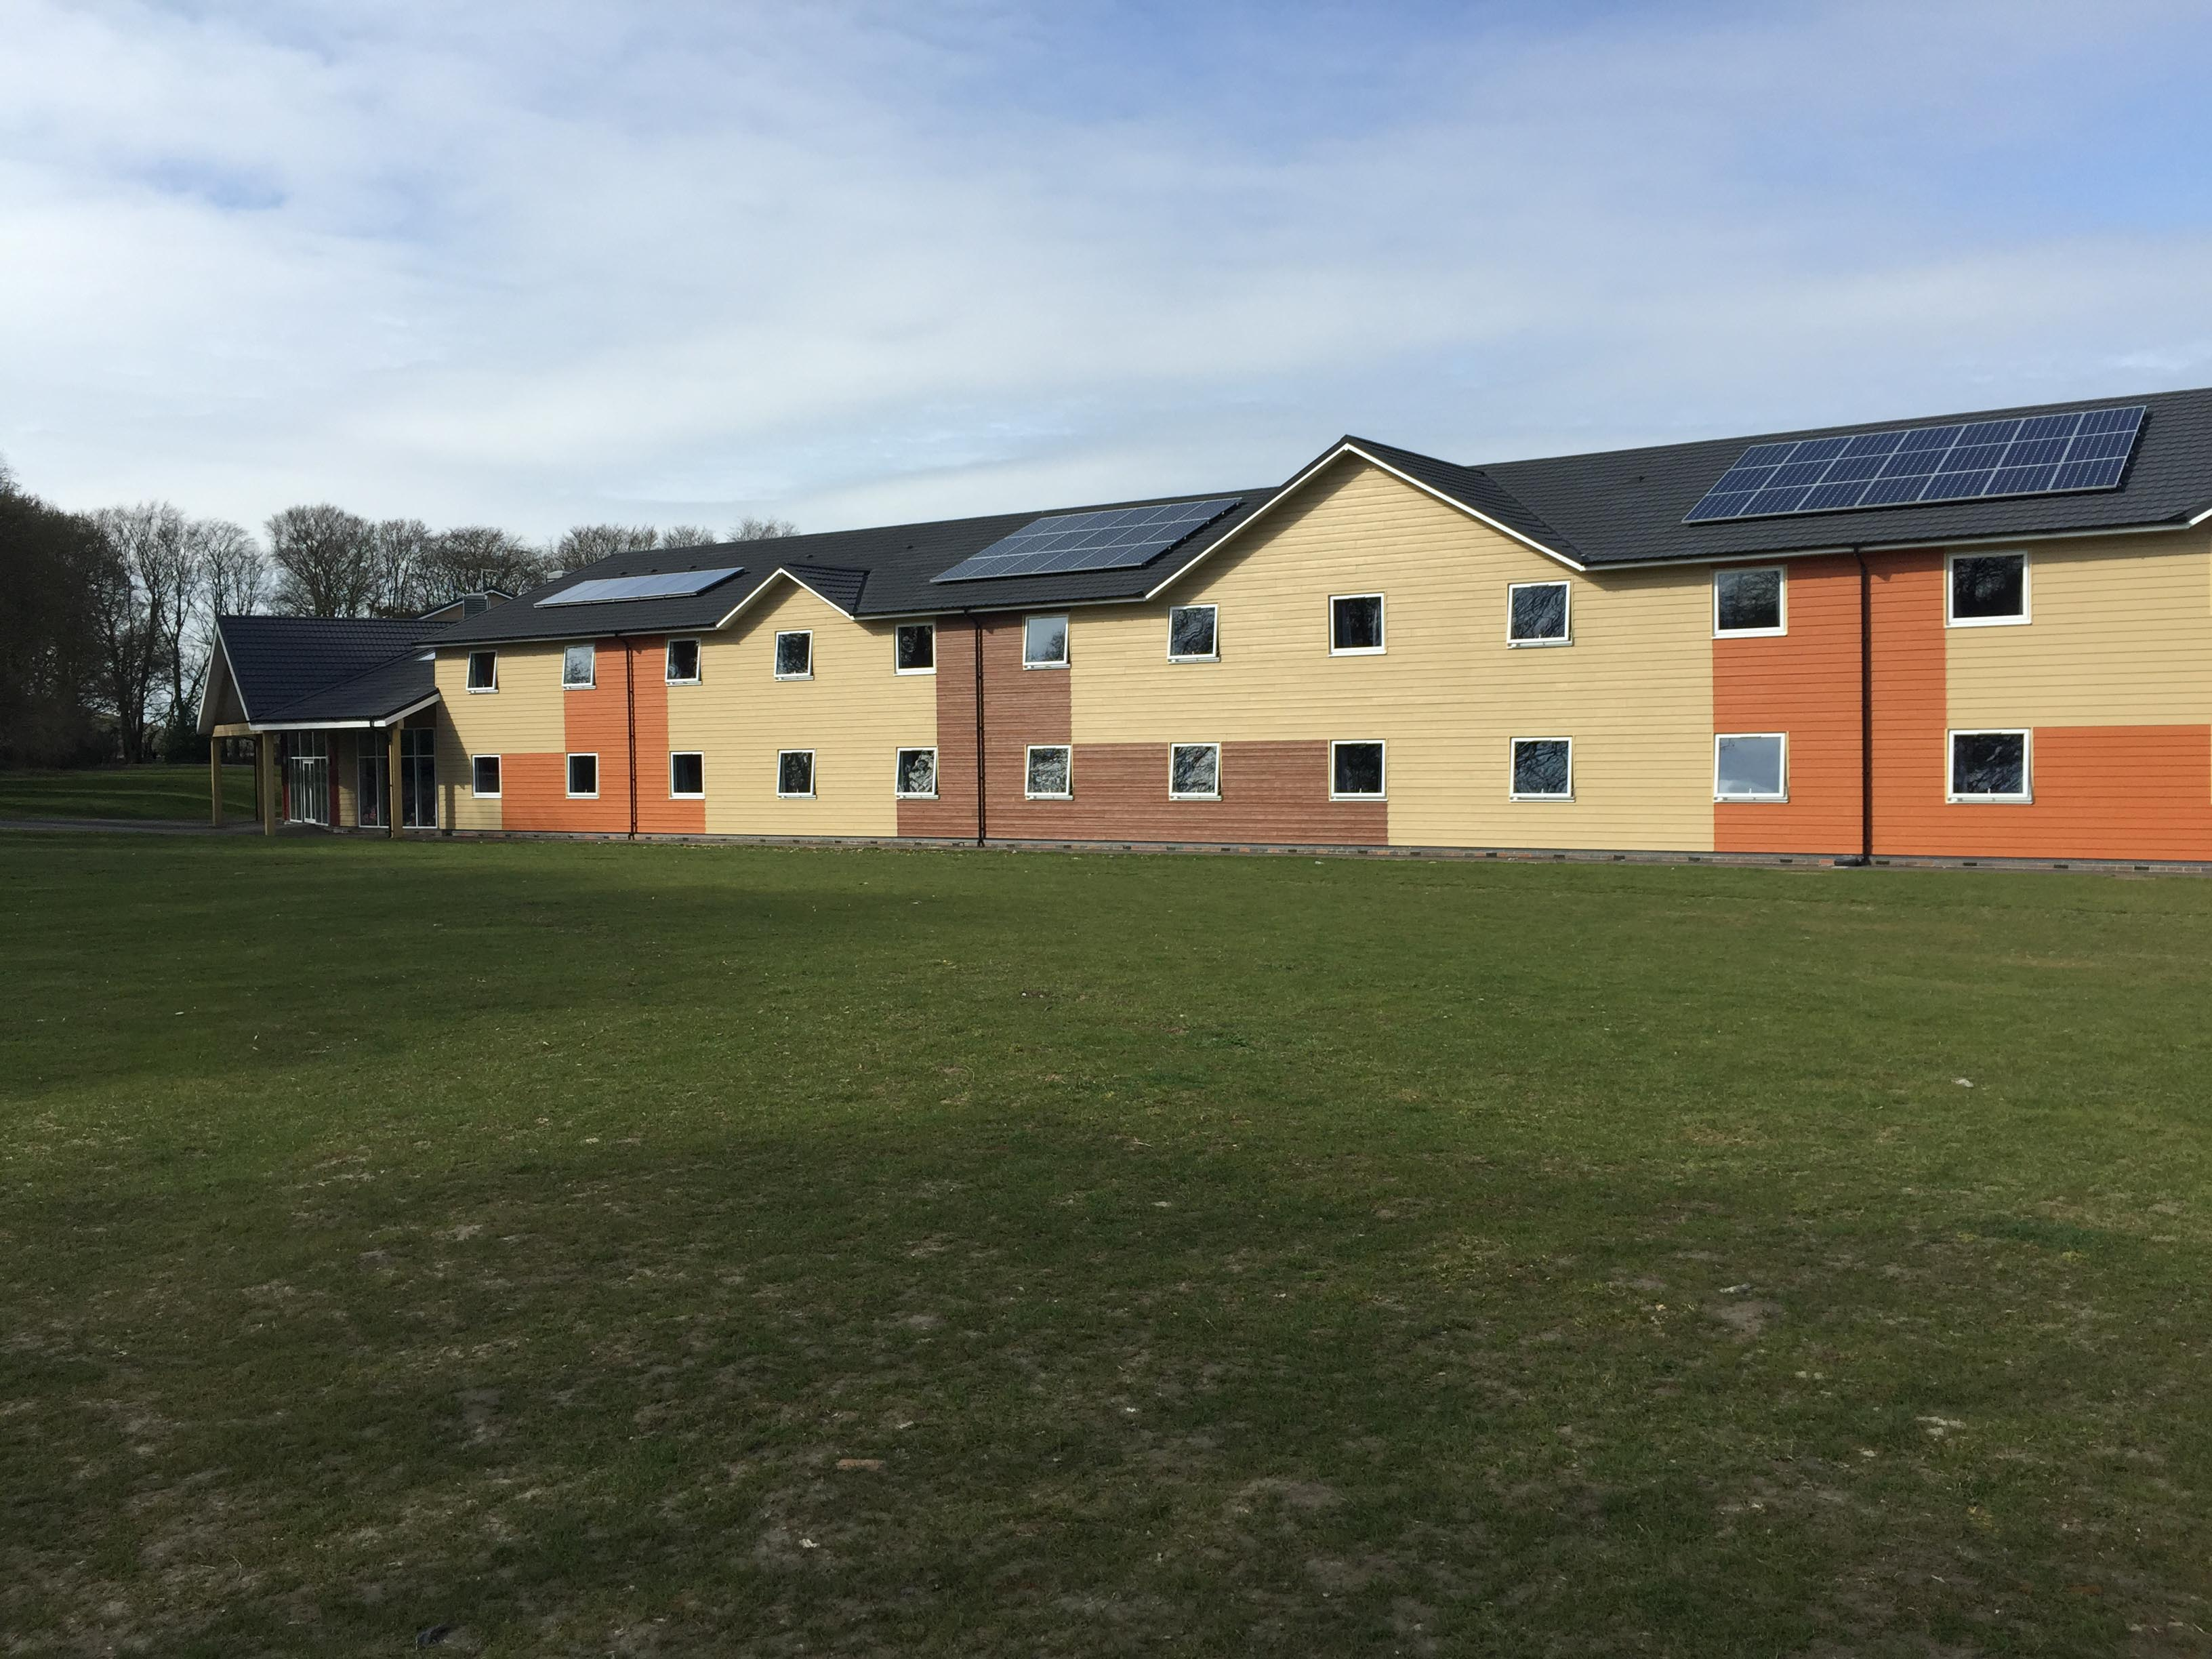 PGL Liddington Timber Frame Accommodation with Metrotile Lightweight Roofing in Bond Charcoal with retrofit Photovoltaic System